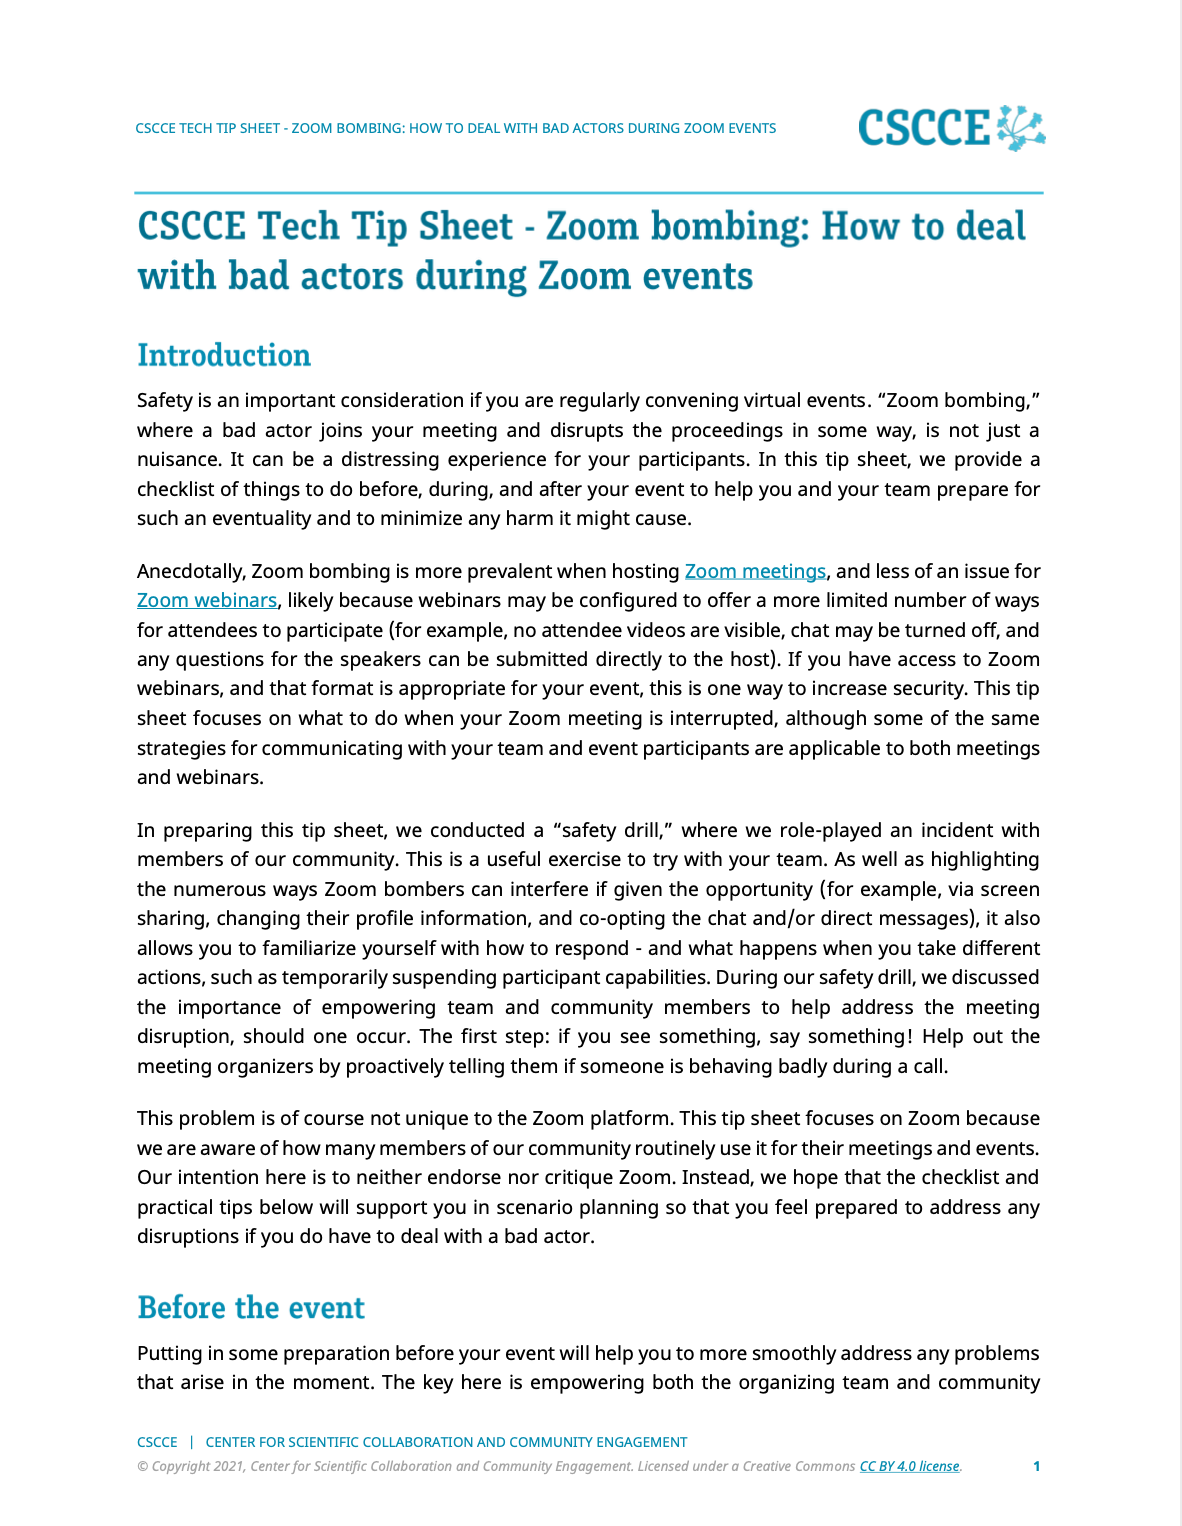 CSCCE Tech Tip Sheet on Zoom bombing